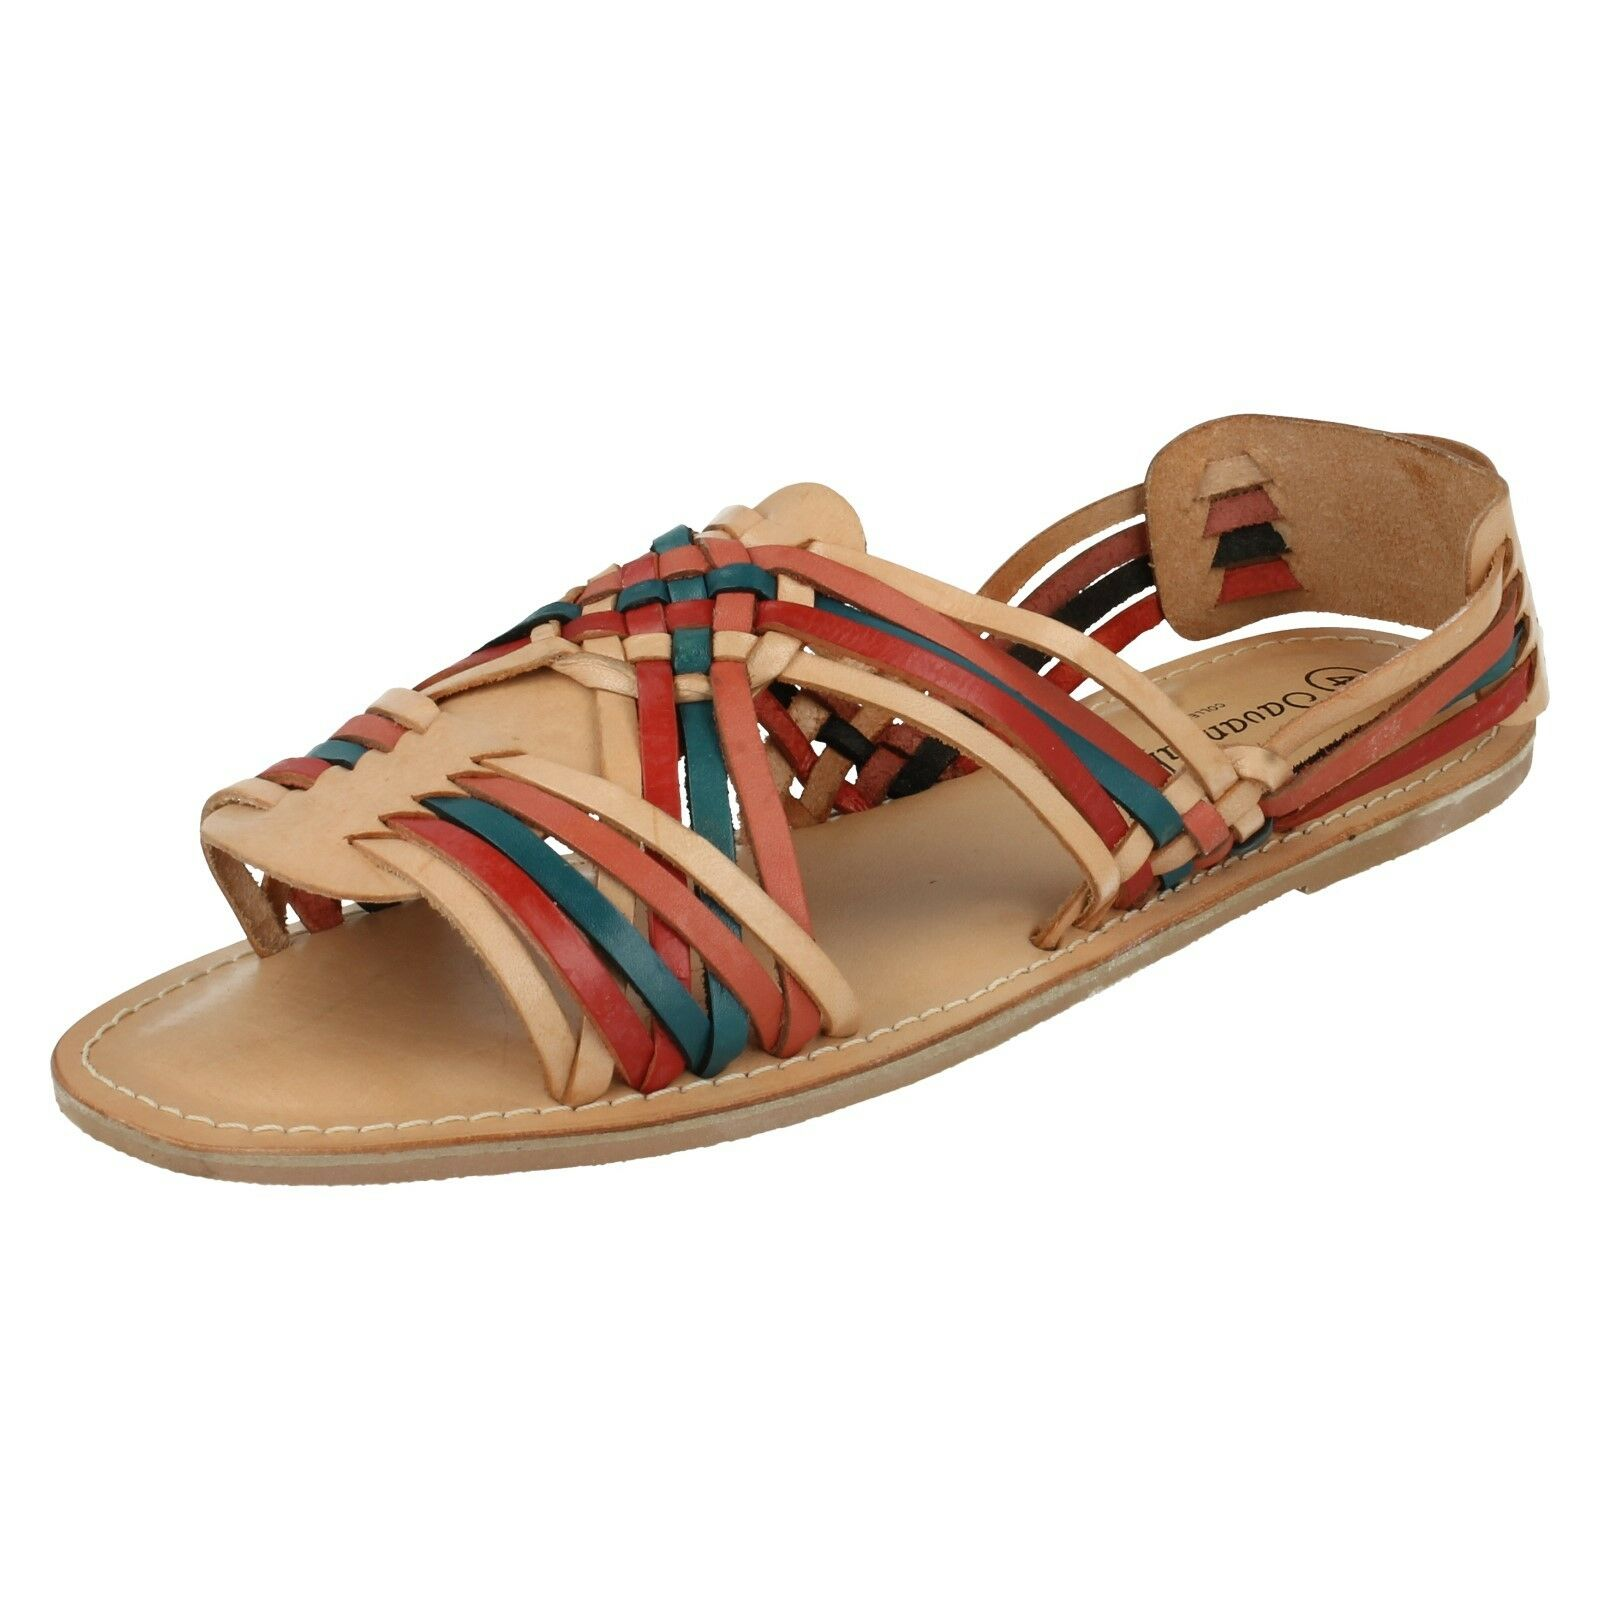 LADIES STRAPPY SAVANNAH SLIP ON LEATHER STRAPPY LADIES OPEN TOE SUMMER SANDALS L6726 092565